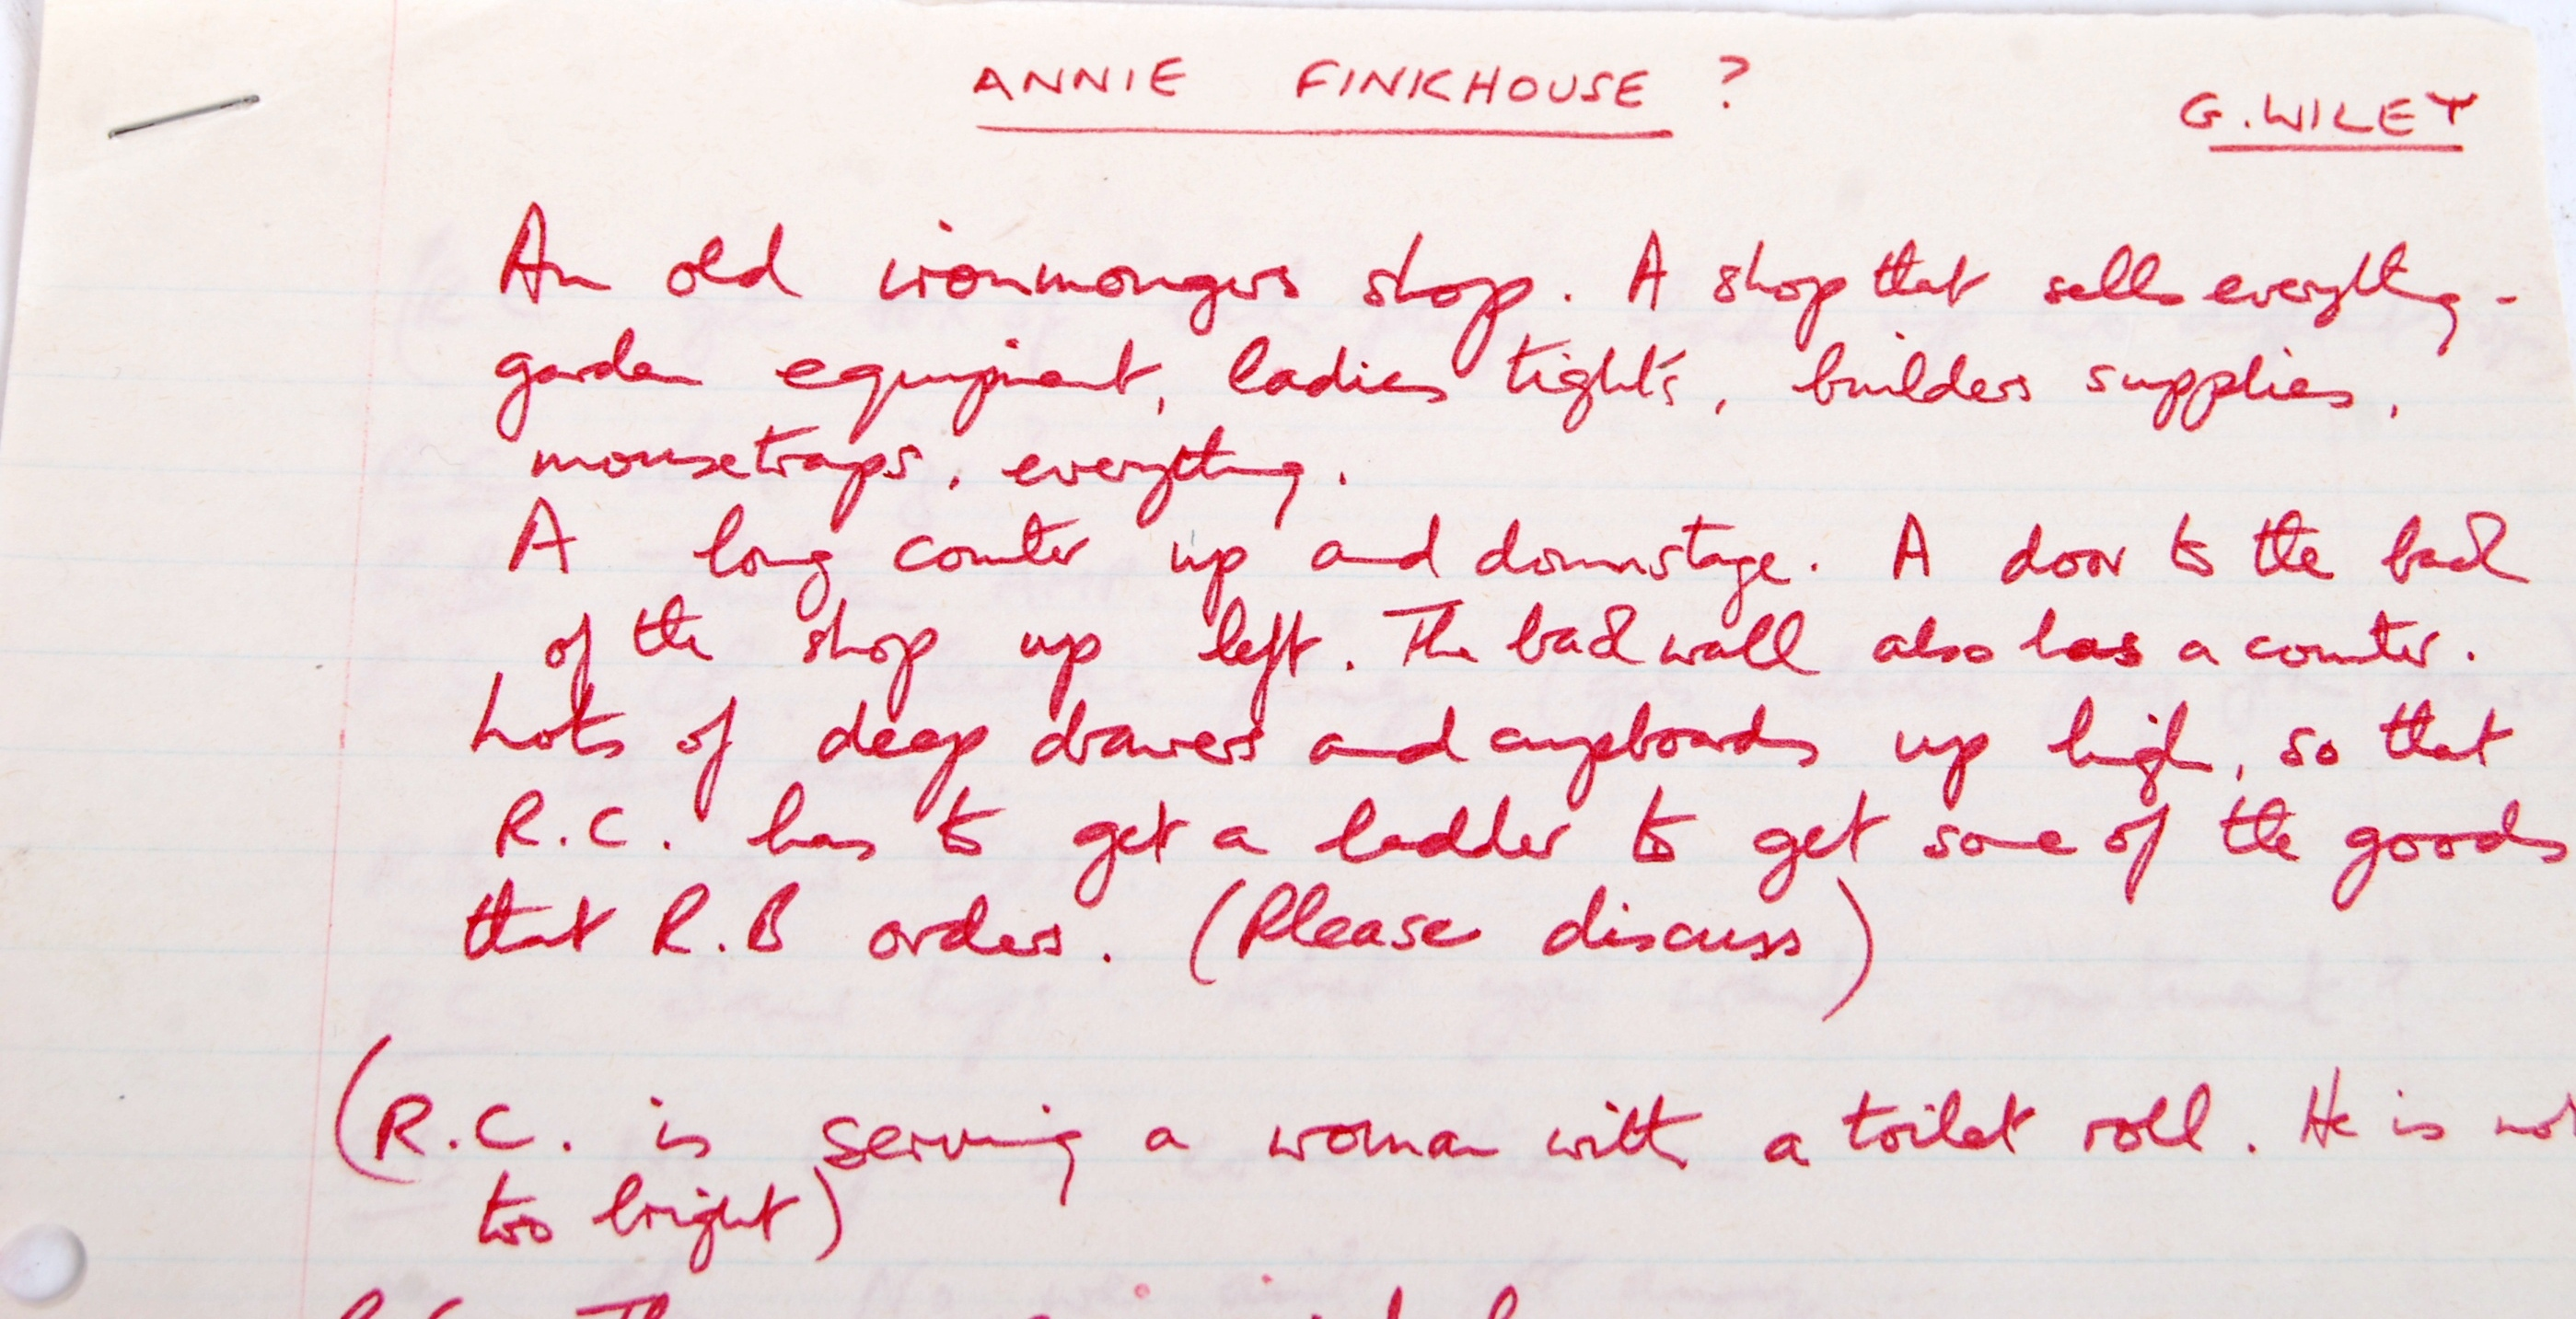 RONNIE BARKER'S HANDWRITTEN TWO RONNIES ' ANNIE FINKHOUSE ' FORK HANDLES SCRIPT - Image 3 of 7